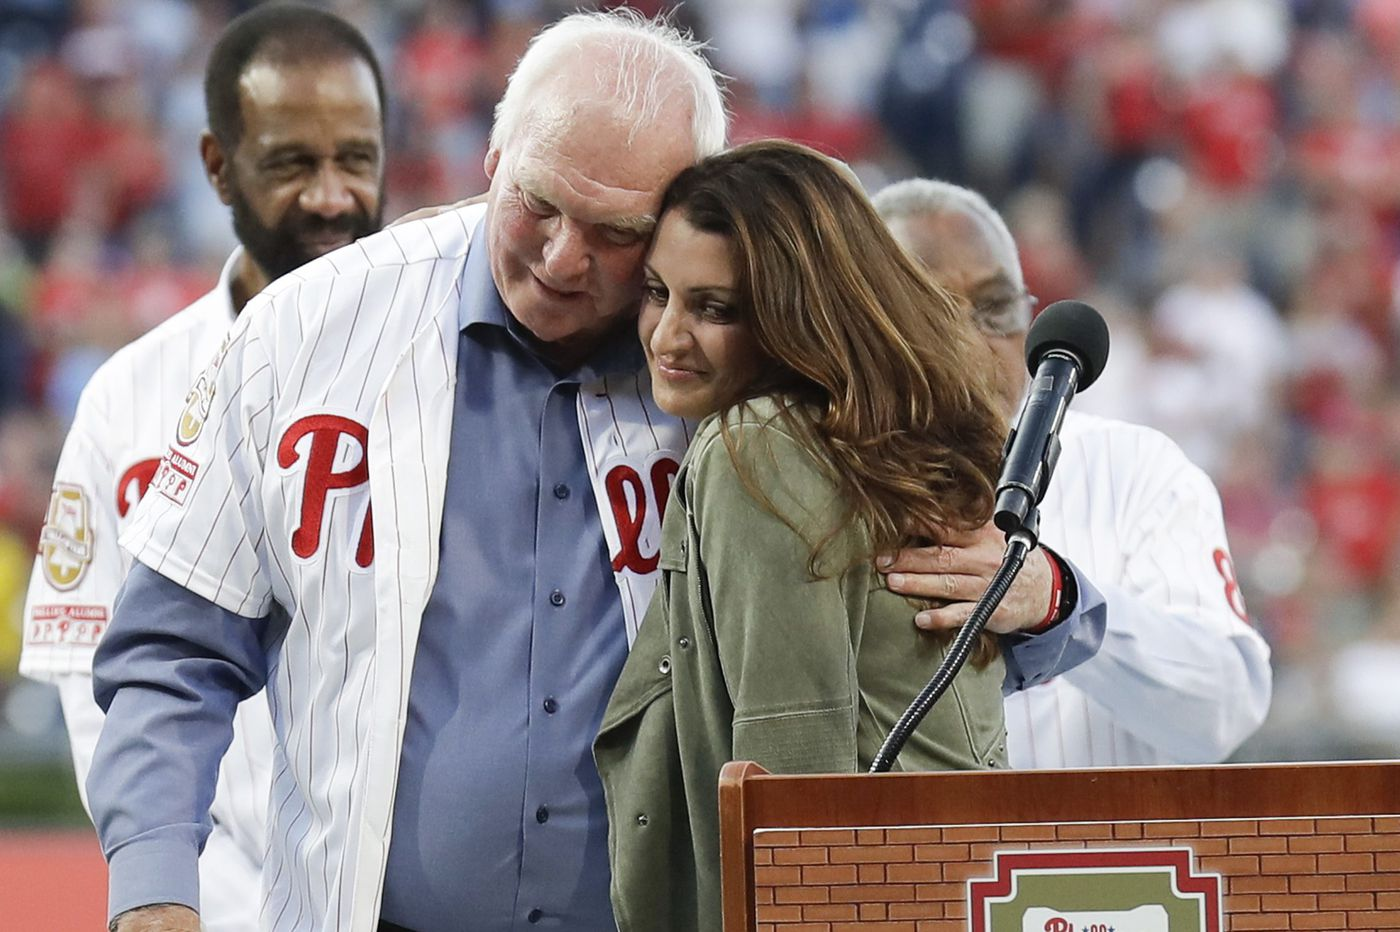 Phillies add Roy Halladay, Pat Gillick to Wall of Fame